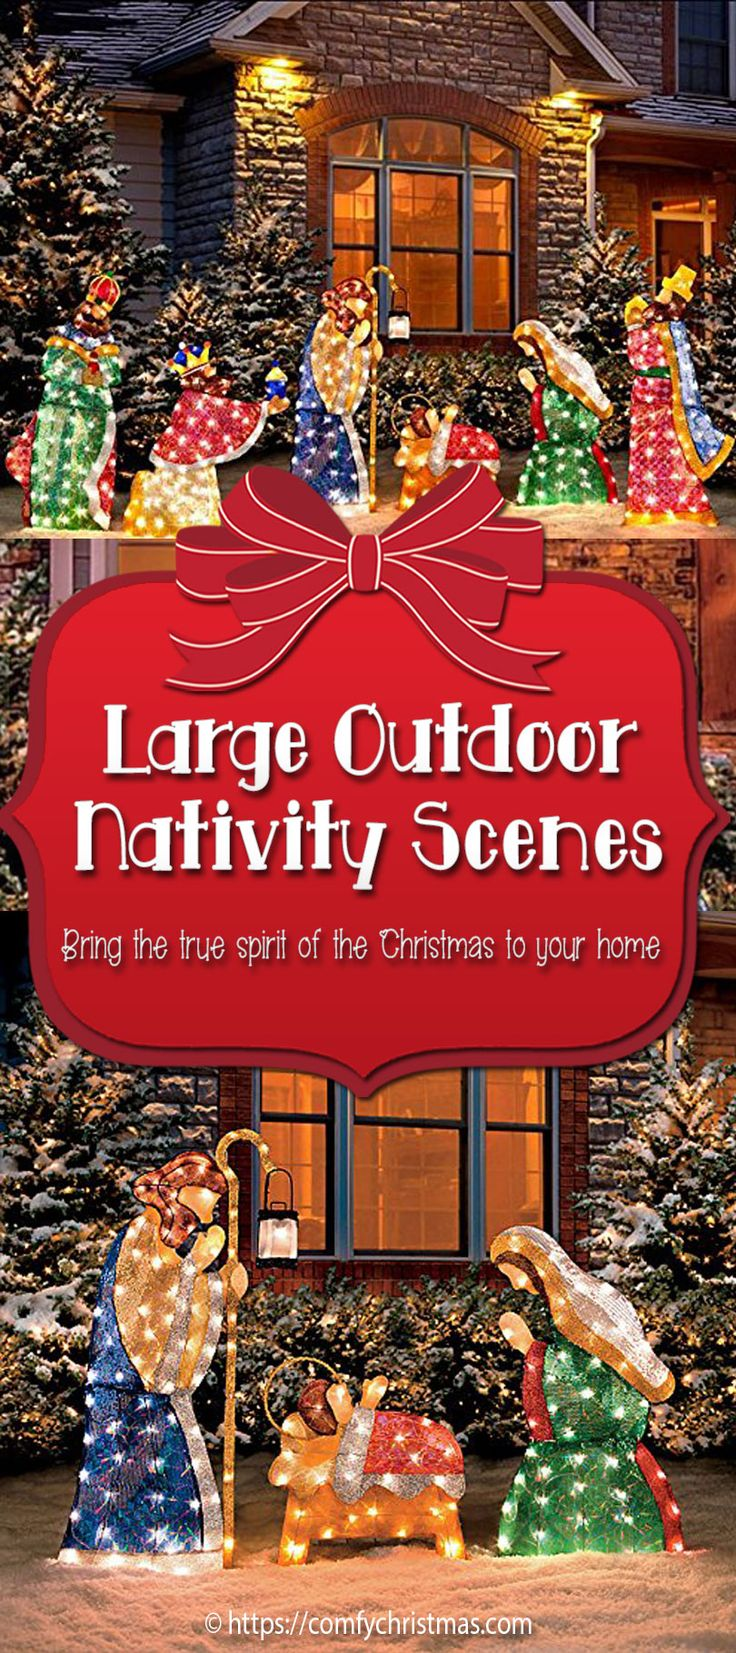 Large Outdoor Nativity scenes bring the true meaning of Christmas to the Holidays! Many of us set up Nativity scenes indoors but why not set up a beautiful Nativity scene in your front yard to remind all the passersby of the real meaning of Christmas.